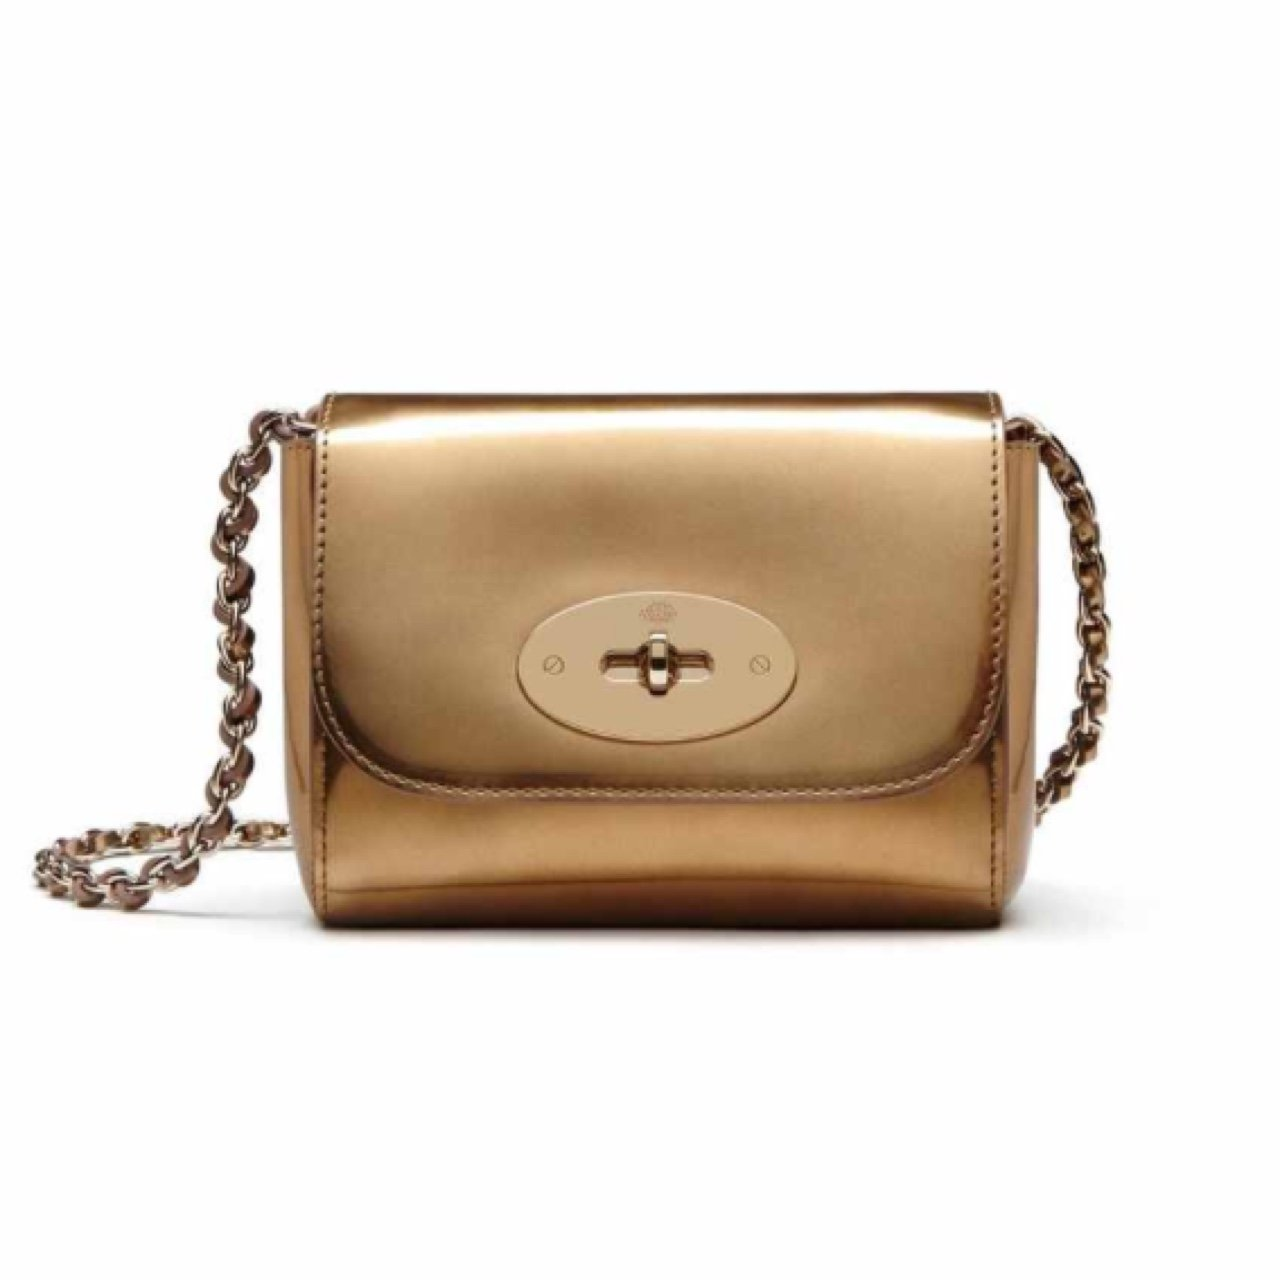 5252fb9c2df @afshanazad. 3 years ago. Manchester, UK. Mulberry mini Lily cross body bag.  Gold mirror metallic leather.